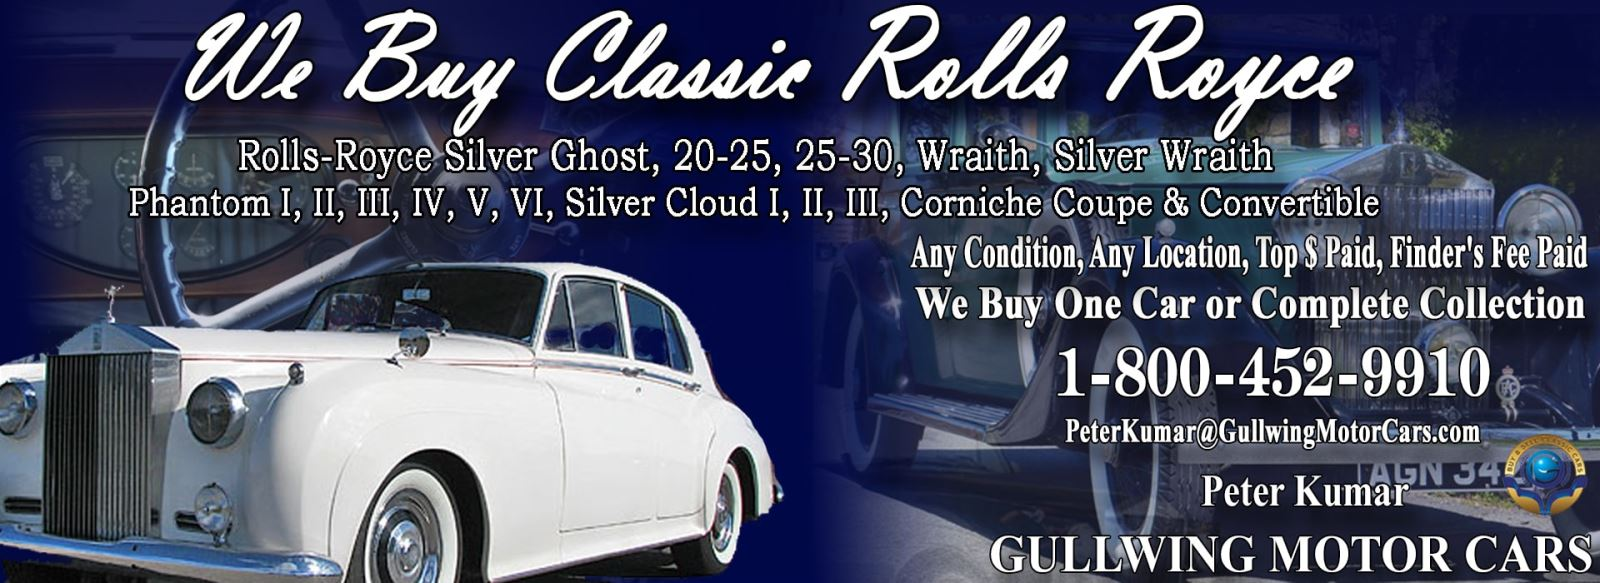 Classic Rolls Royce Silver Cloud II for sale, we buy vintage Rolls Royce Silver Cloud II. Call Peter Kumar. Gullwing Motor